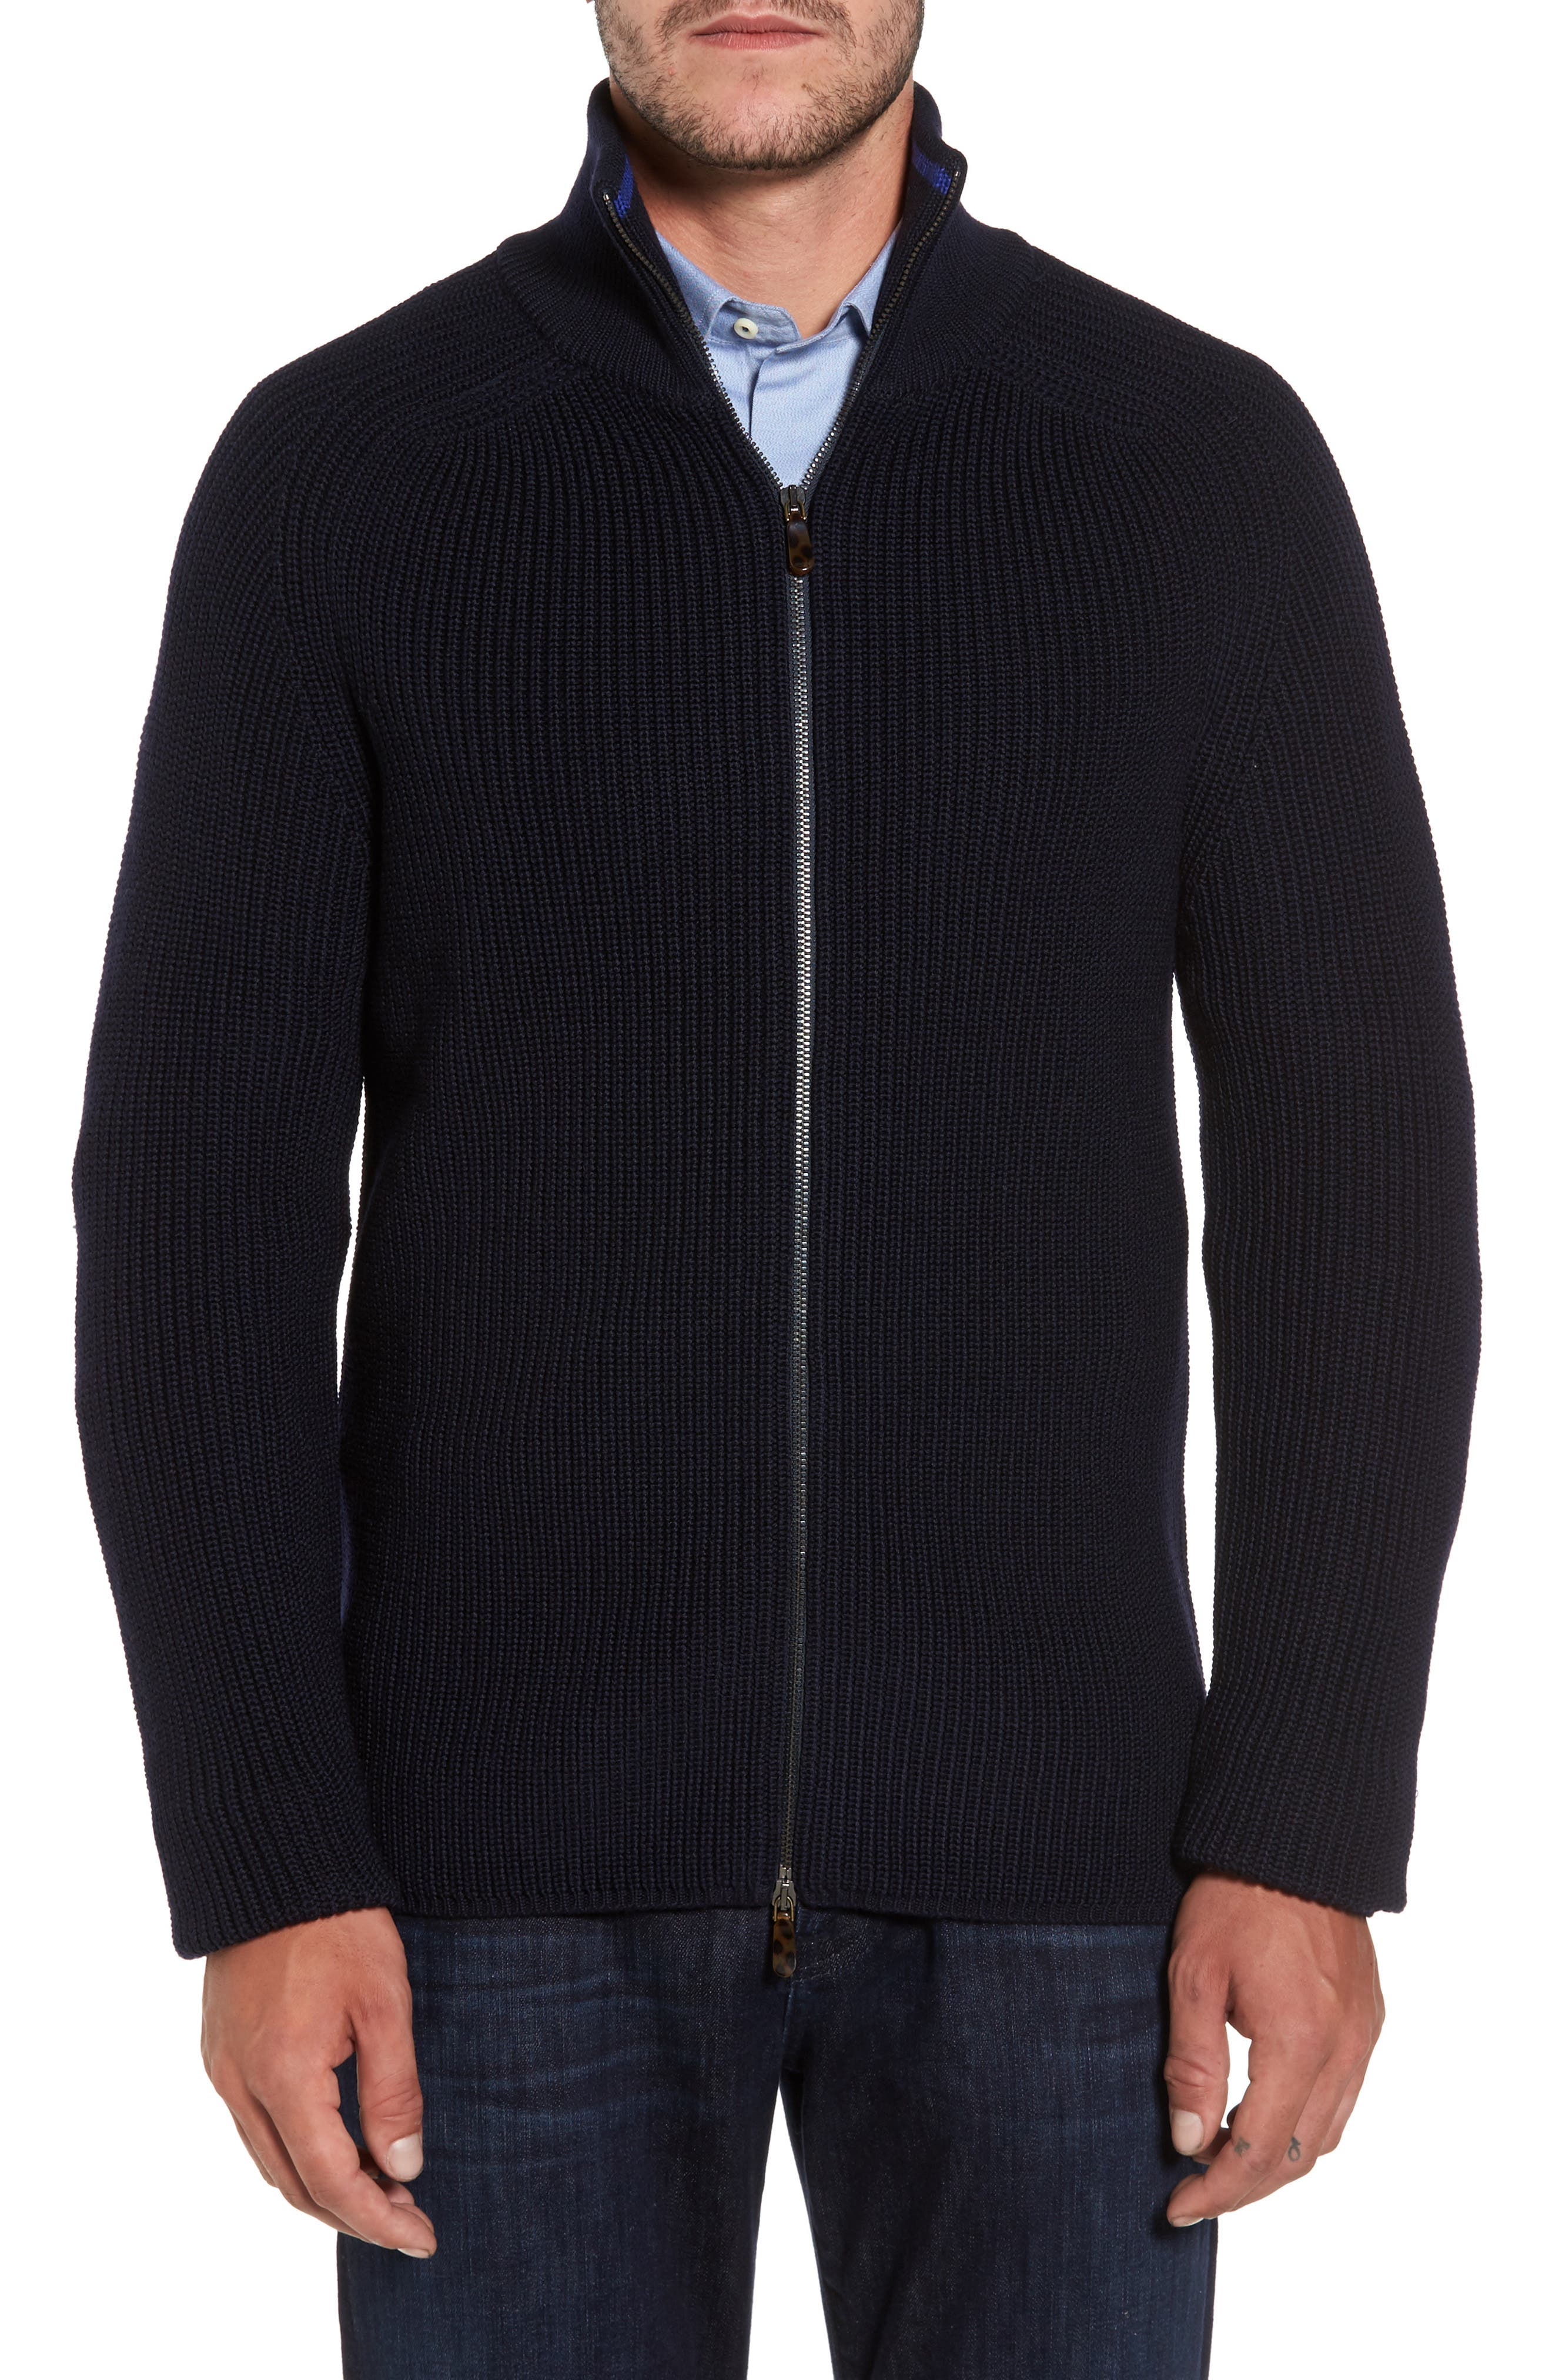 Shaker Stitch Wool Zip Cardigan,                             Main thumbnail 1, color,                             Navy